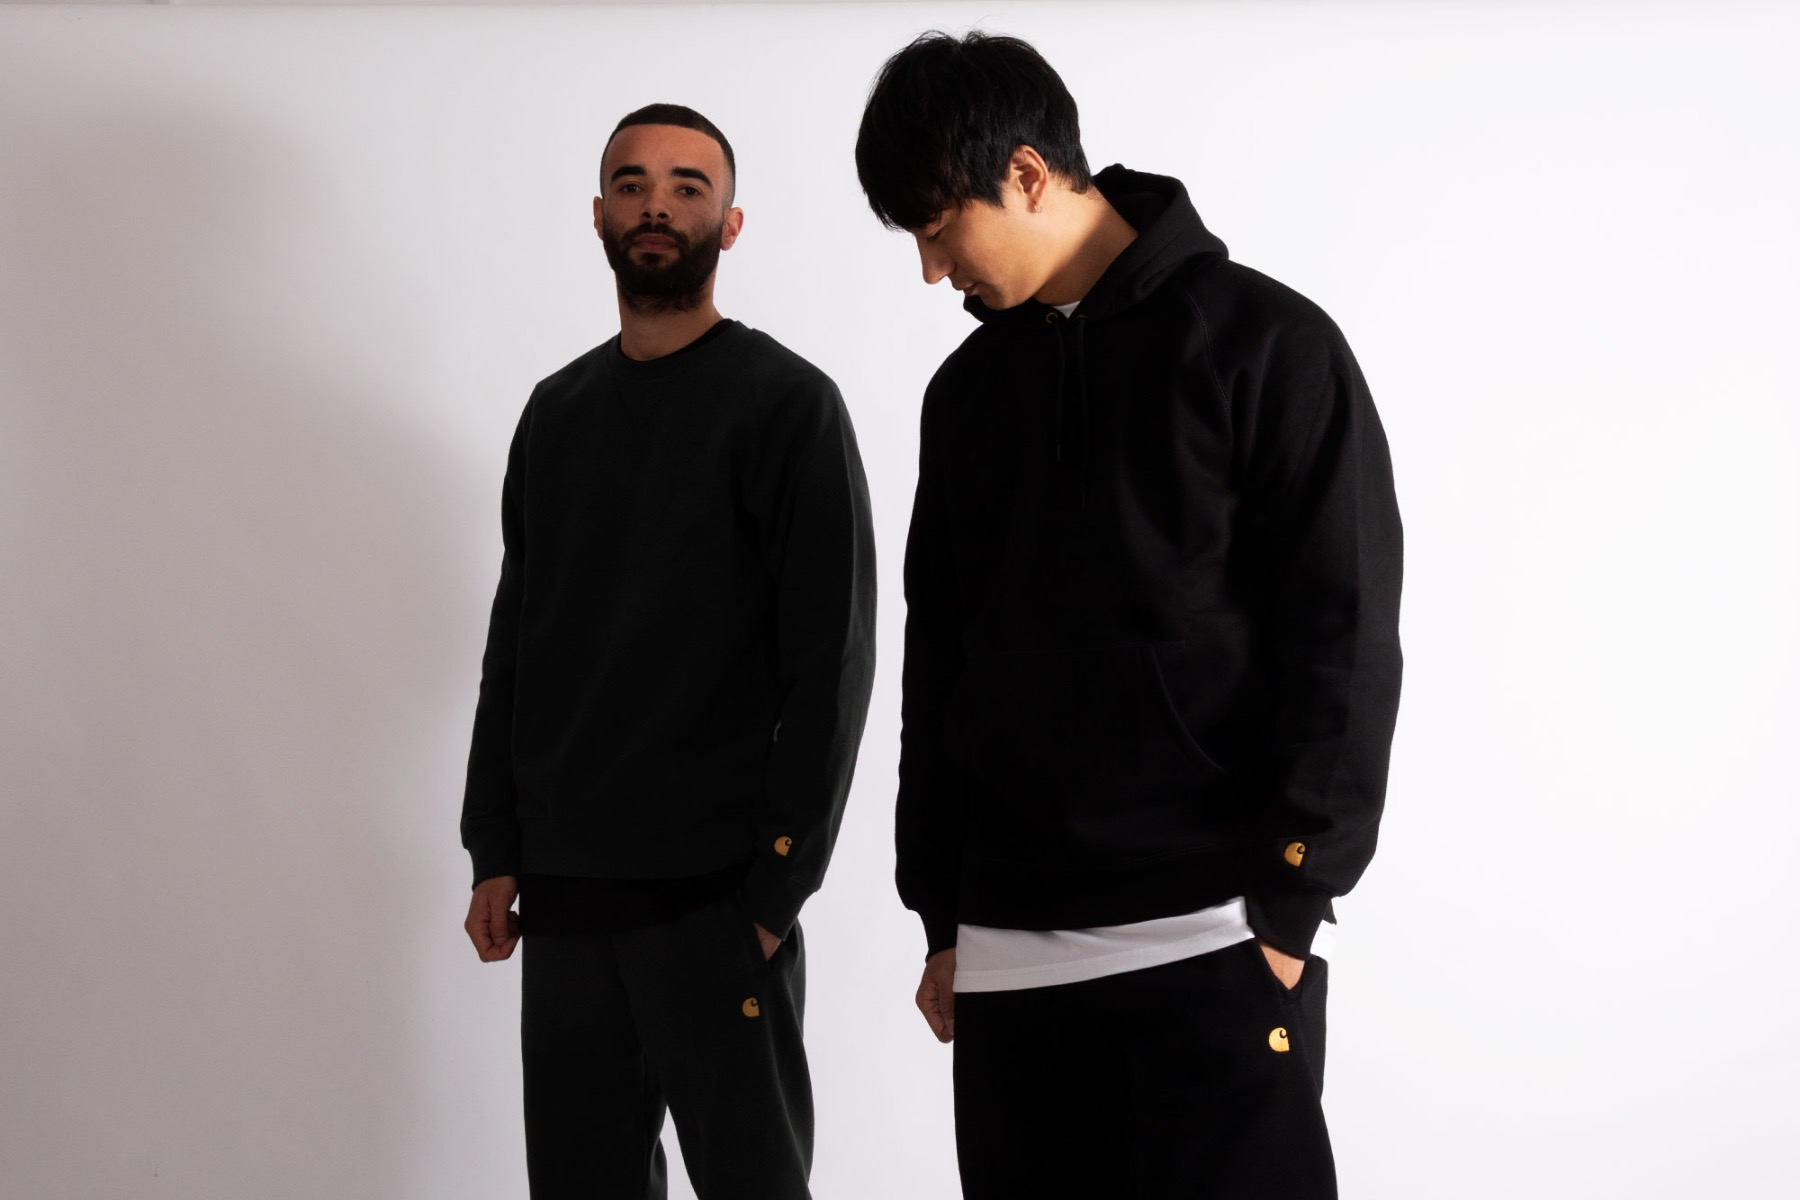 carhartt wip chase tracksuits in black/gold and dark teal